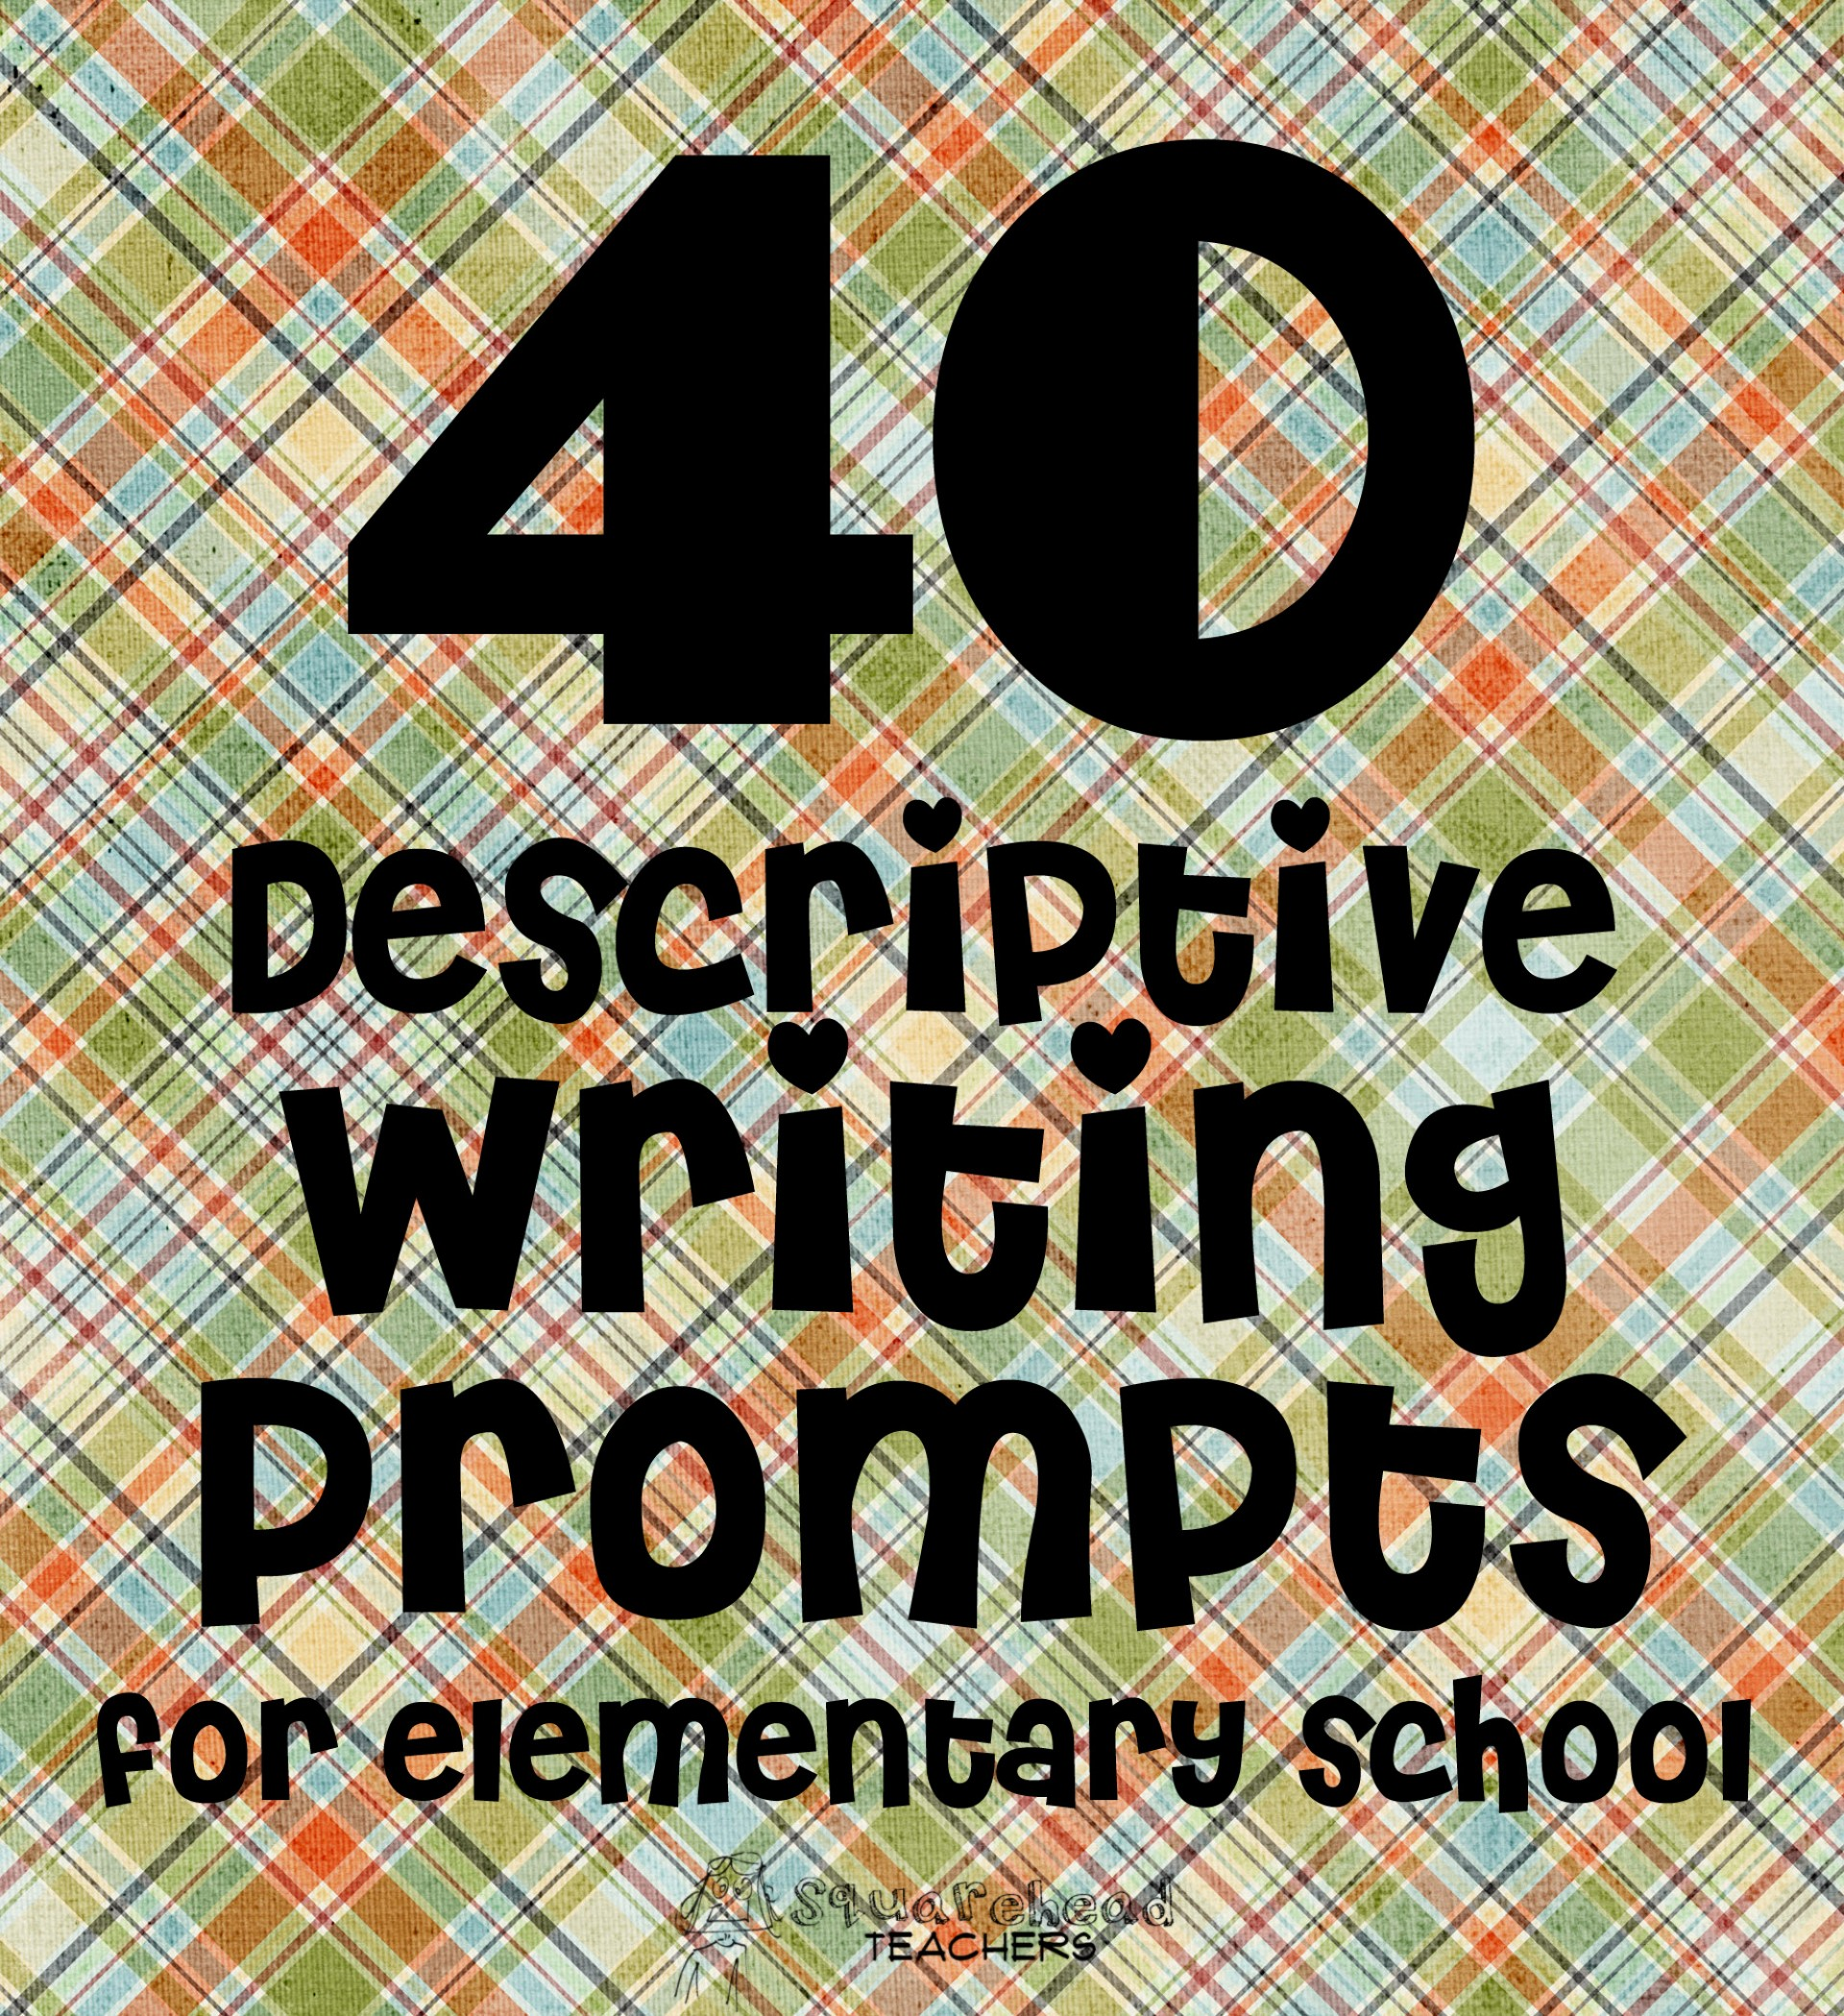 018 Descriptive Writing Prompts For Elem School Uw Essay Fascinating University Of Wisconsin Whitewater Prompt System 1920